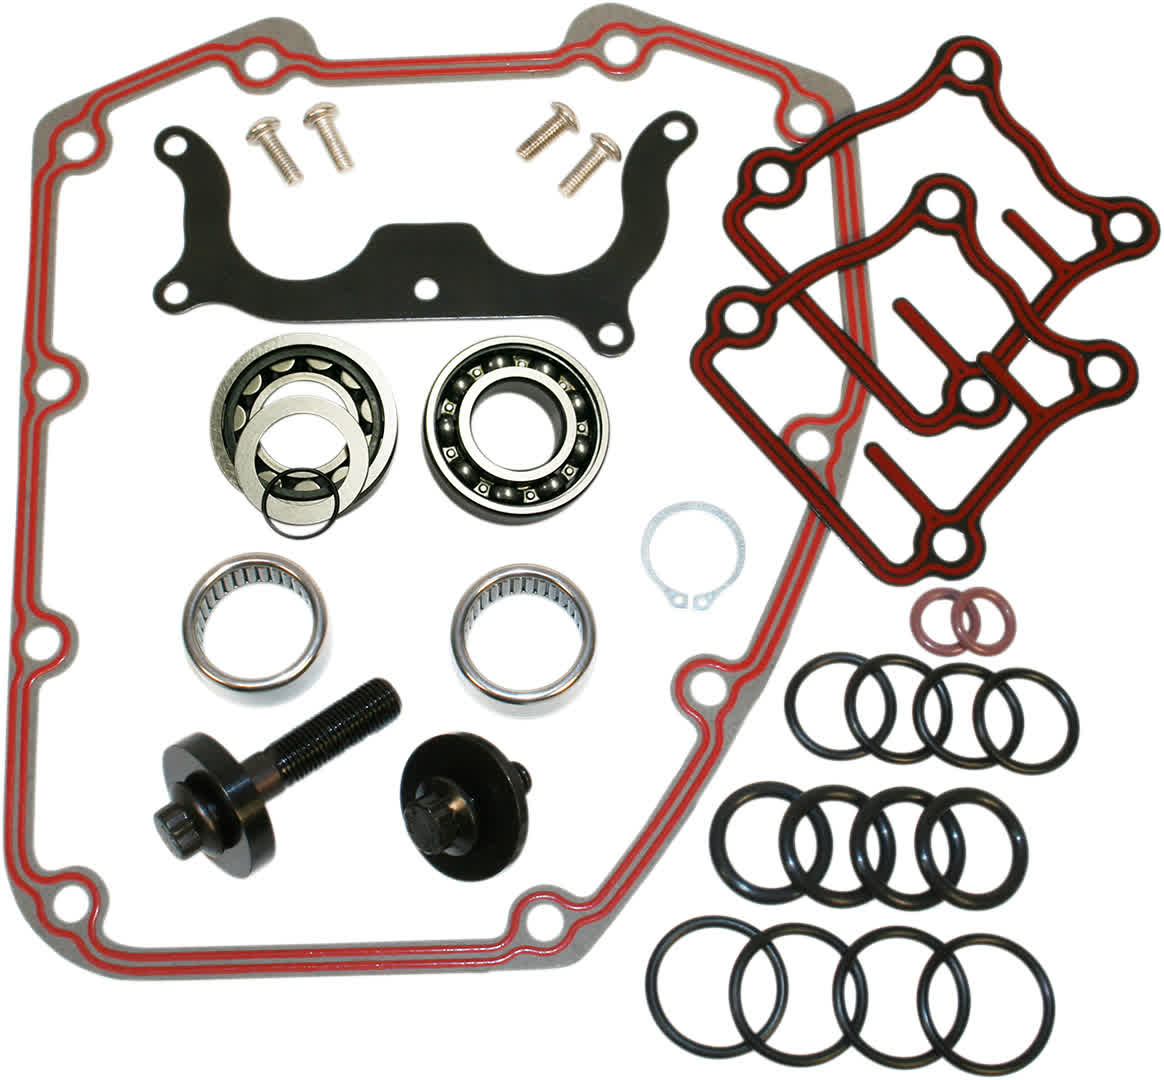 Feuling 2058 Camshaft Installation Kit 99-06 Chain Drive